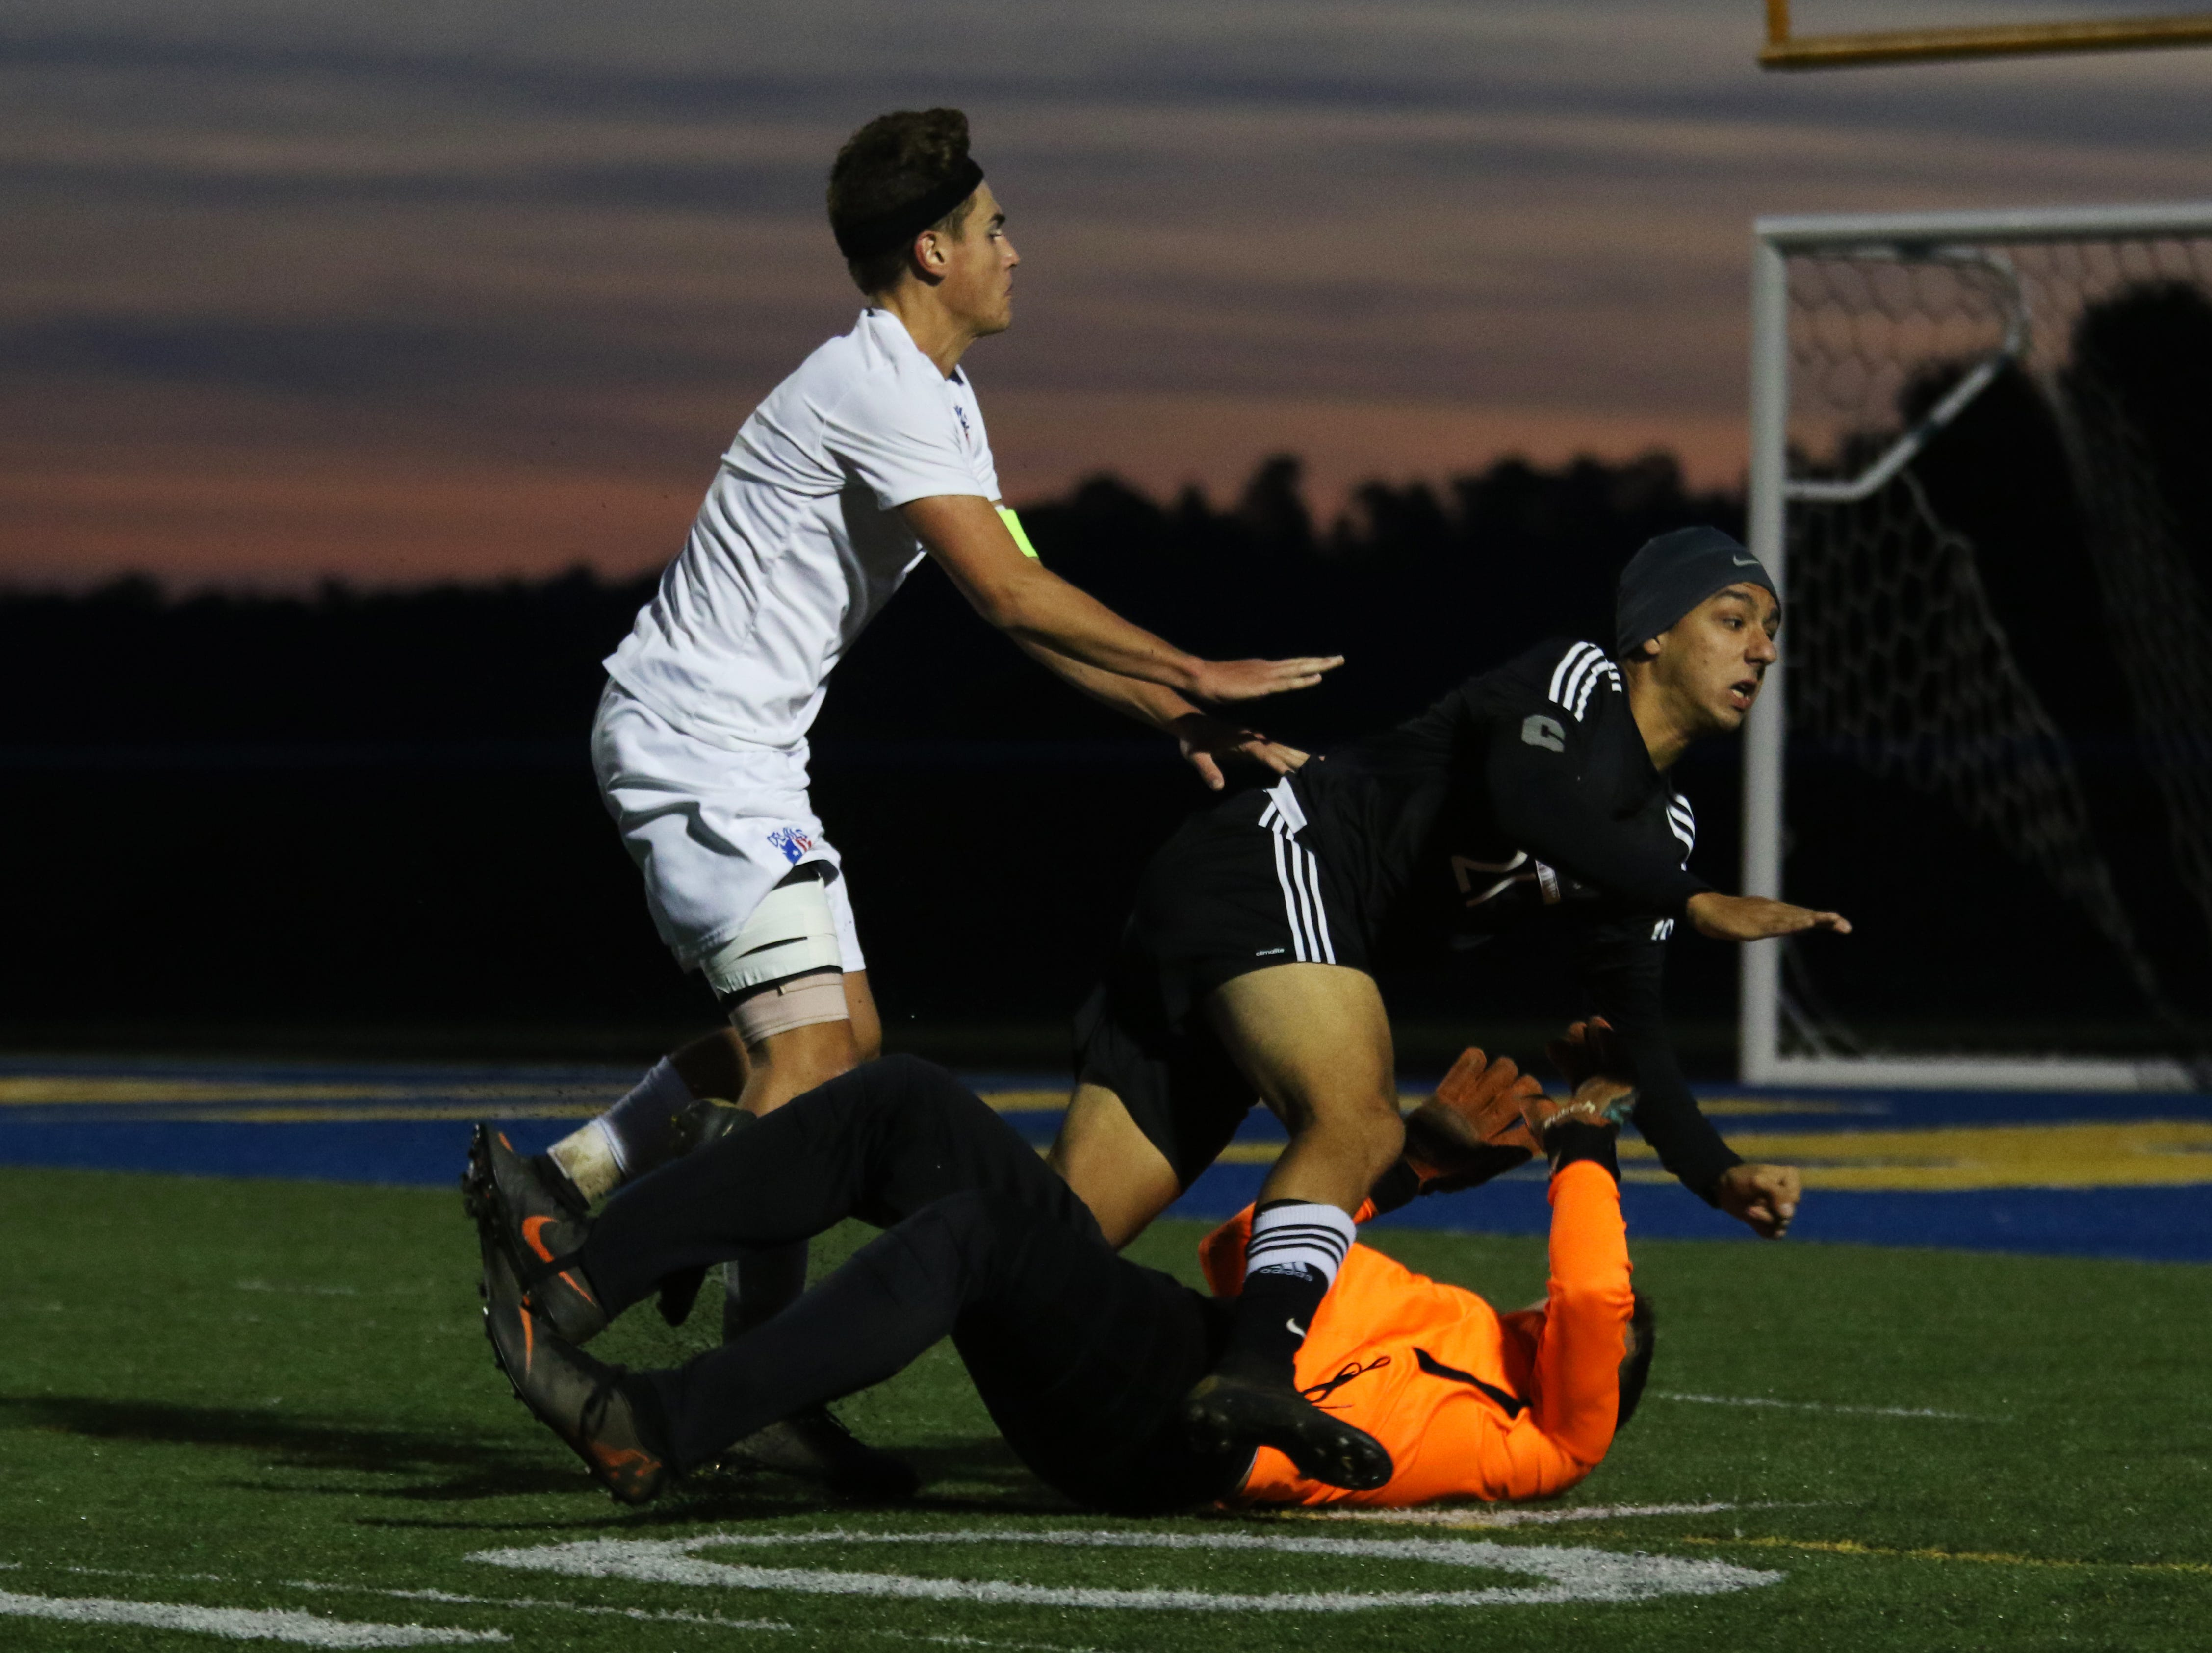 River View's Kyle Moses collides with keeper Hunter Haines while chasing a ball from Zanesville's Jack Thorne. River View knocked Zanesville out of the tournament with a 2-0 win over the Blue Devils Wednesday night at Maysville High School.